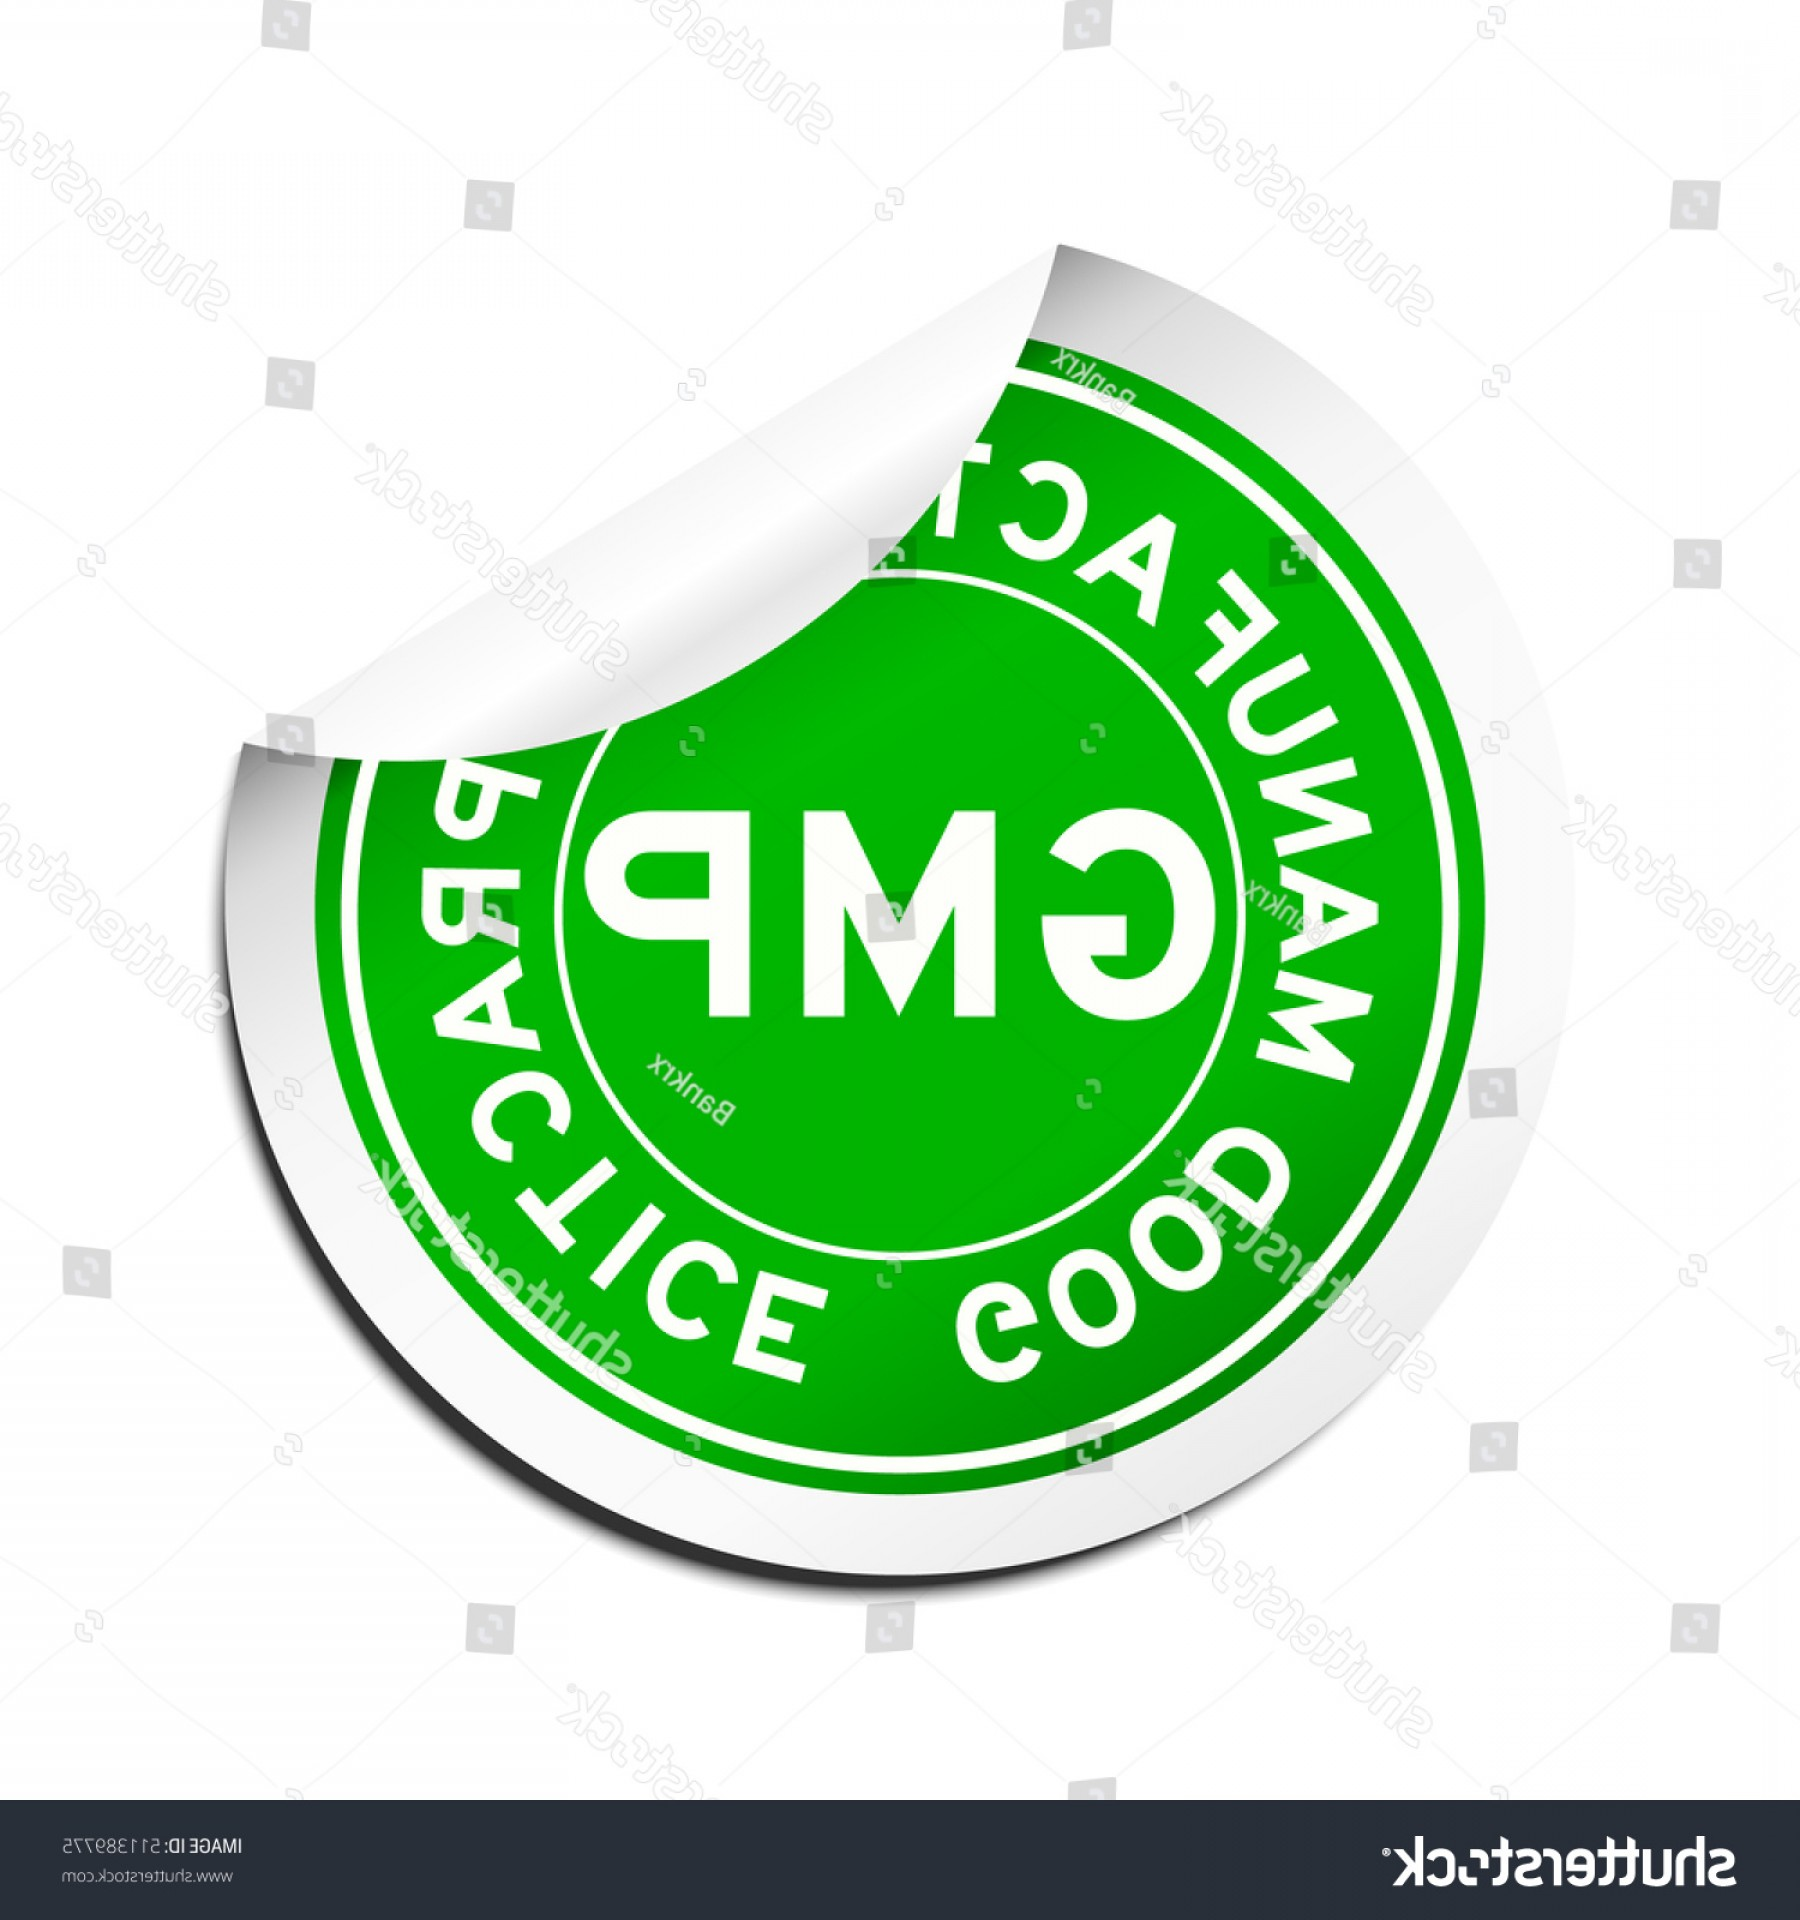 GMP Logo Vector: Peel Green Gmp Good Manufacturing Practice